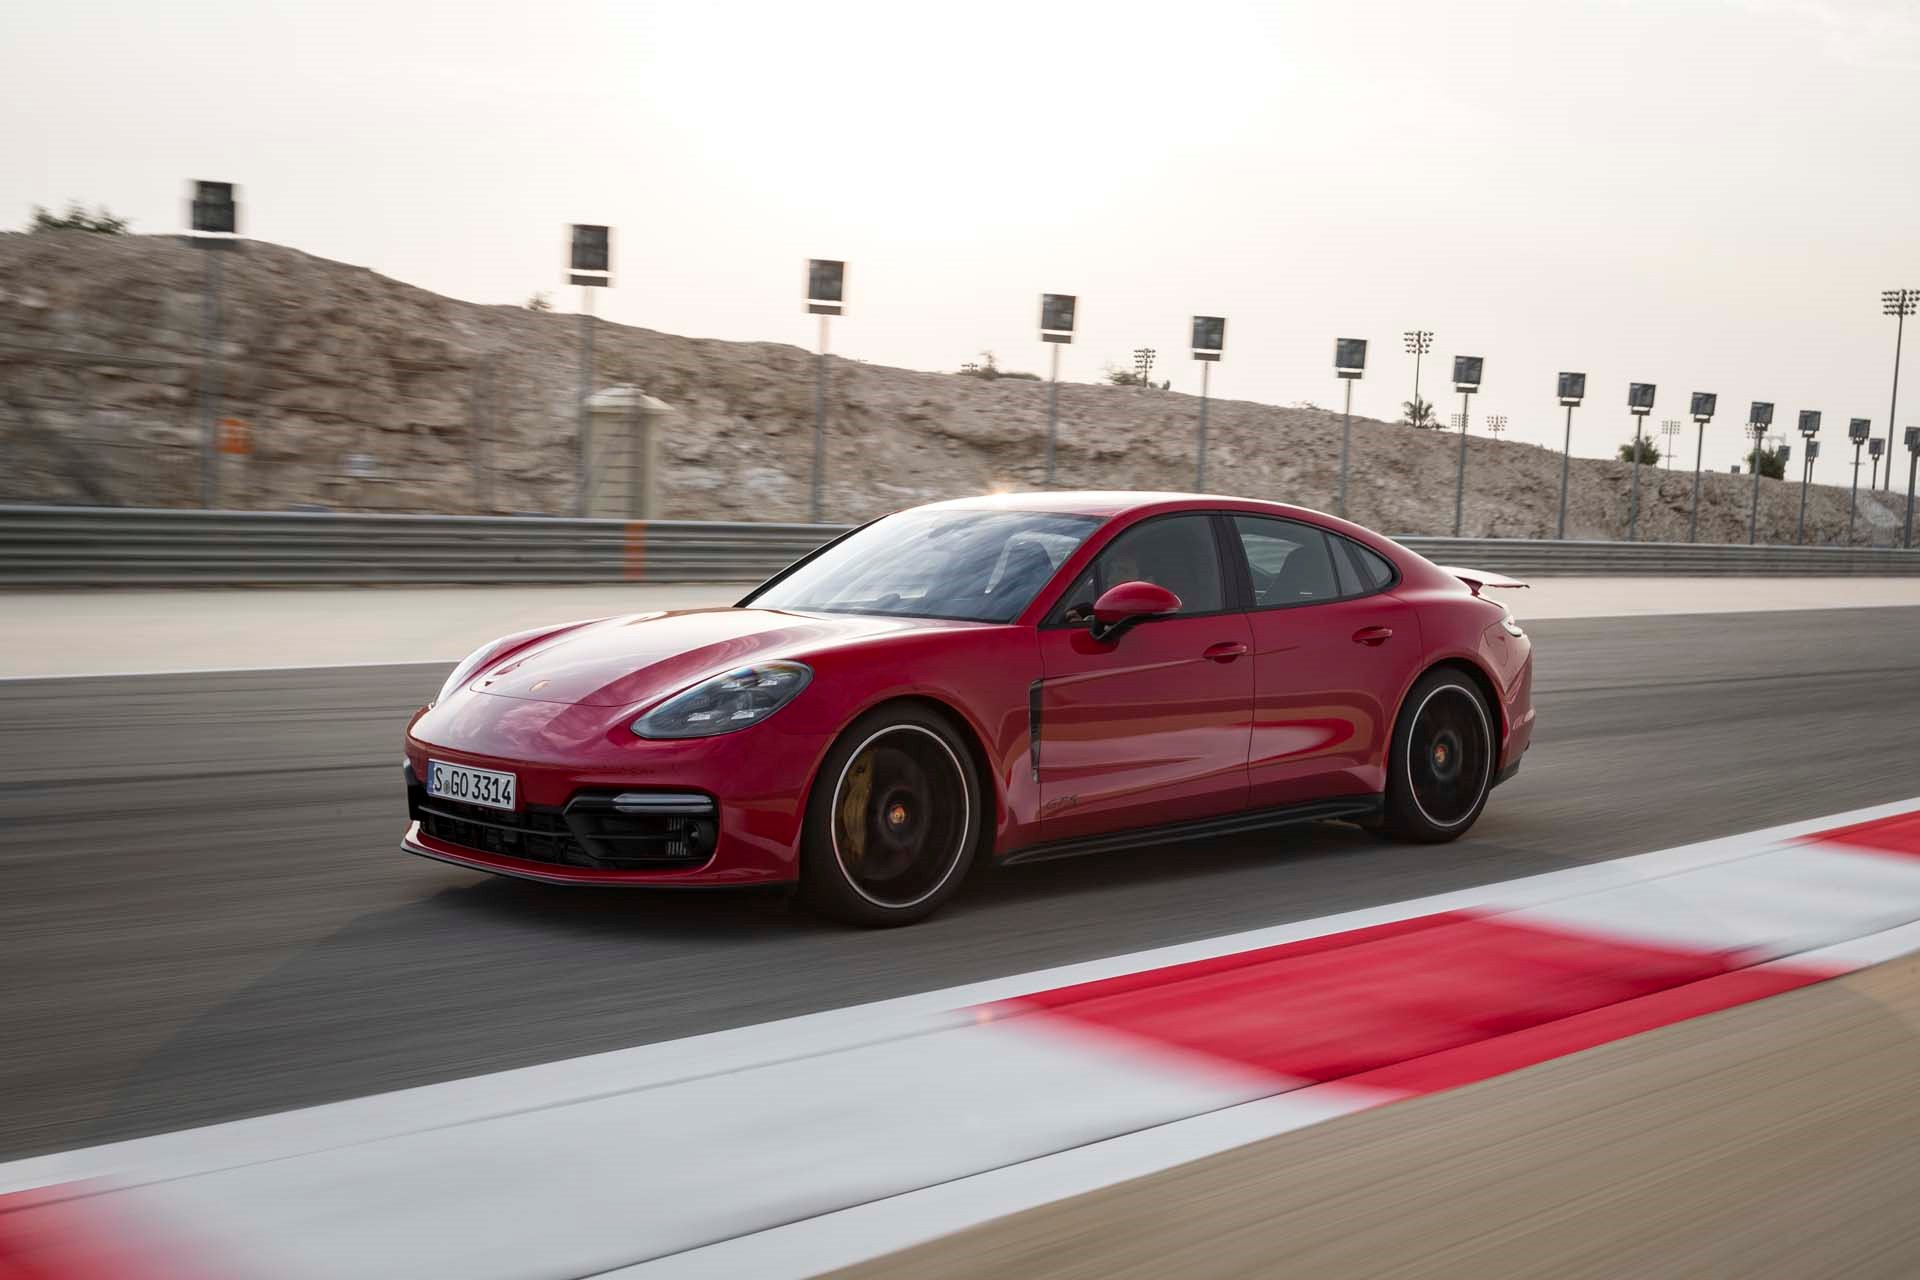 New 2019 Porsche-Panamera 4 E-Hybrid Panamera 4 E-Hybrid for sale $102,900 at M and V Leasing in Brooklyn NY 11223 1